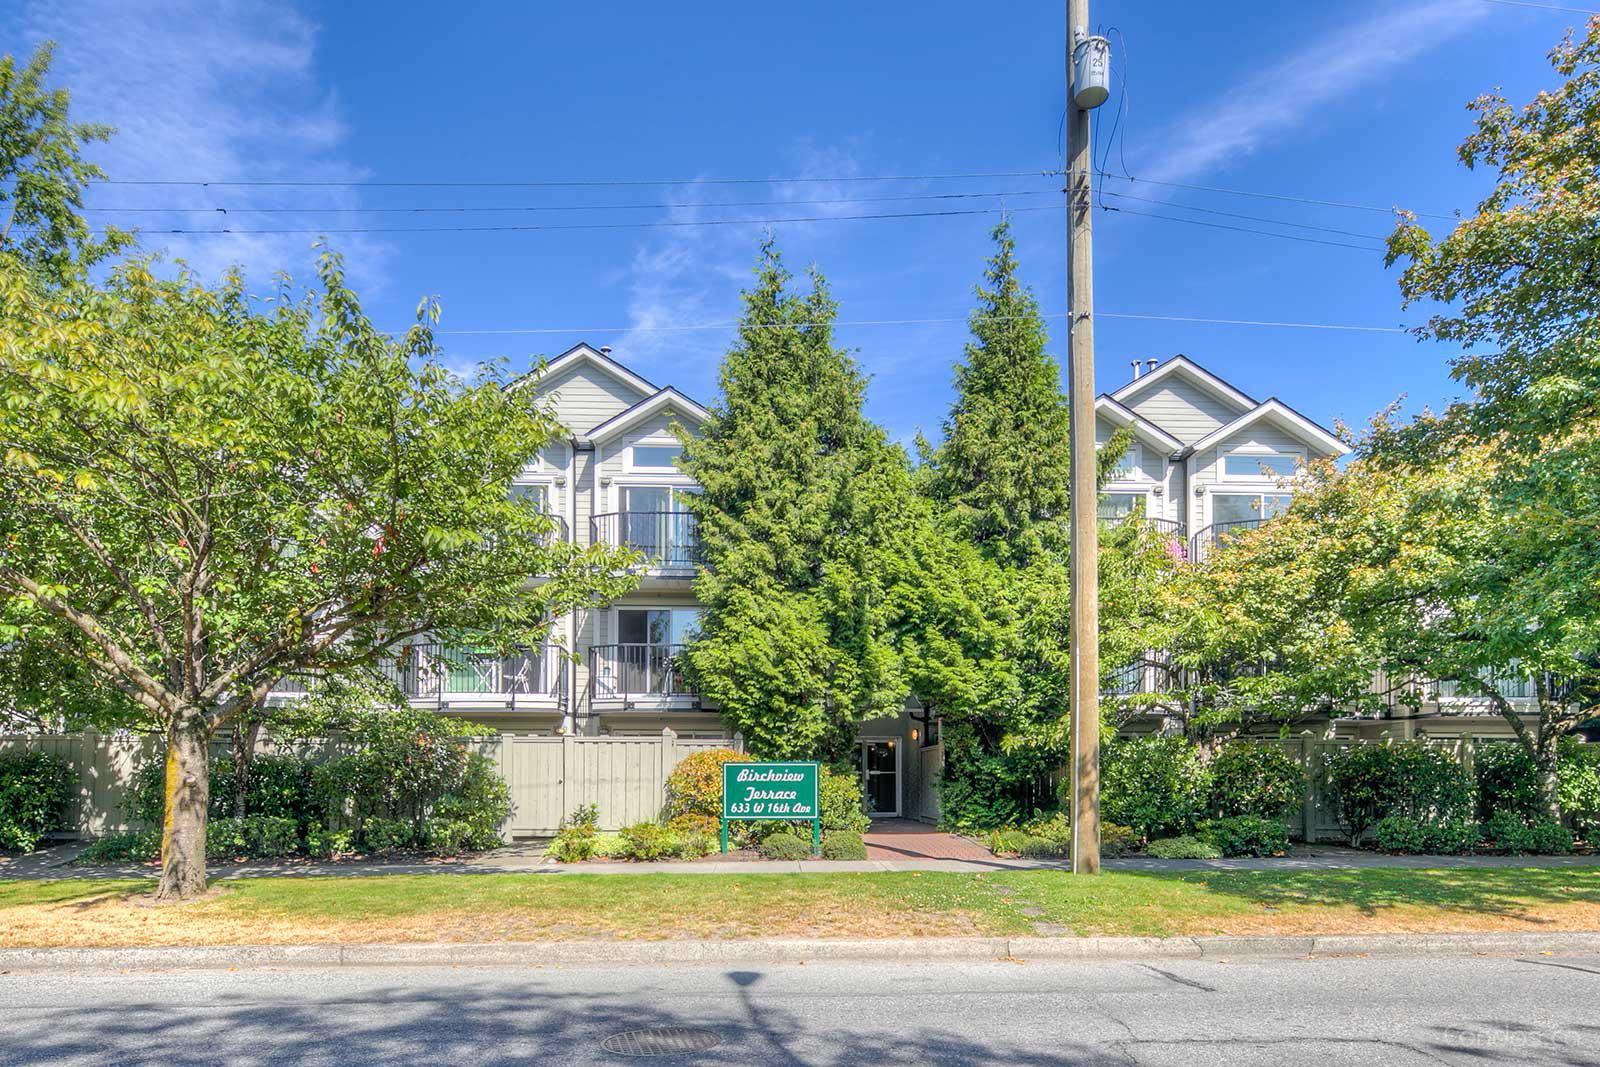 Birchview Terrace at 633 W 16th Ave, Vancouver 0